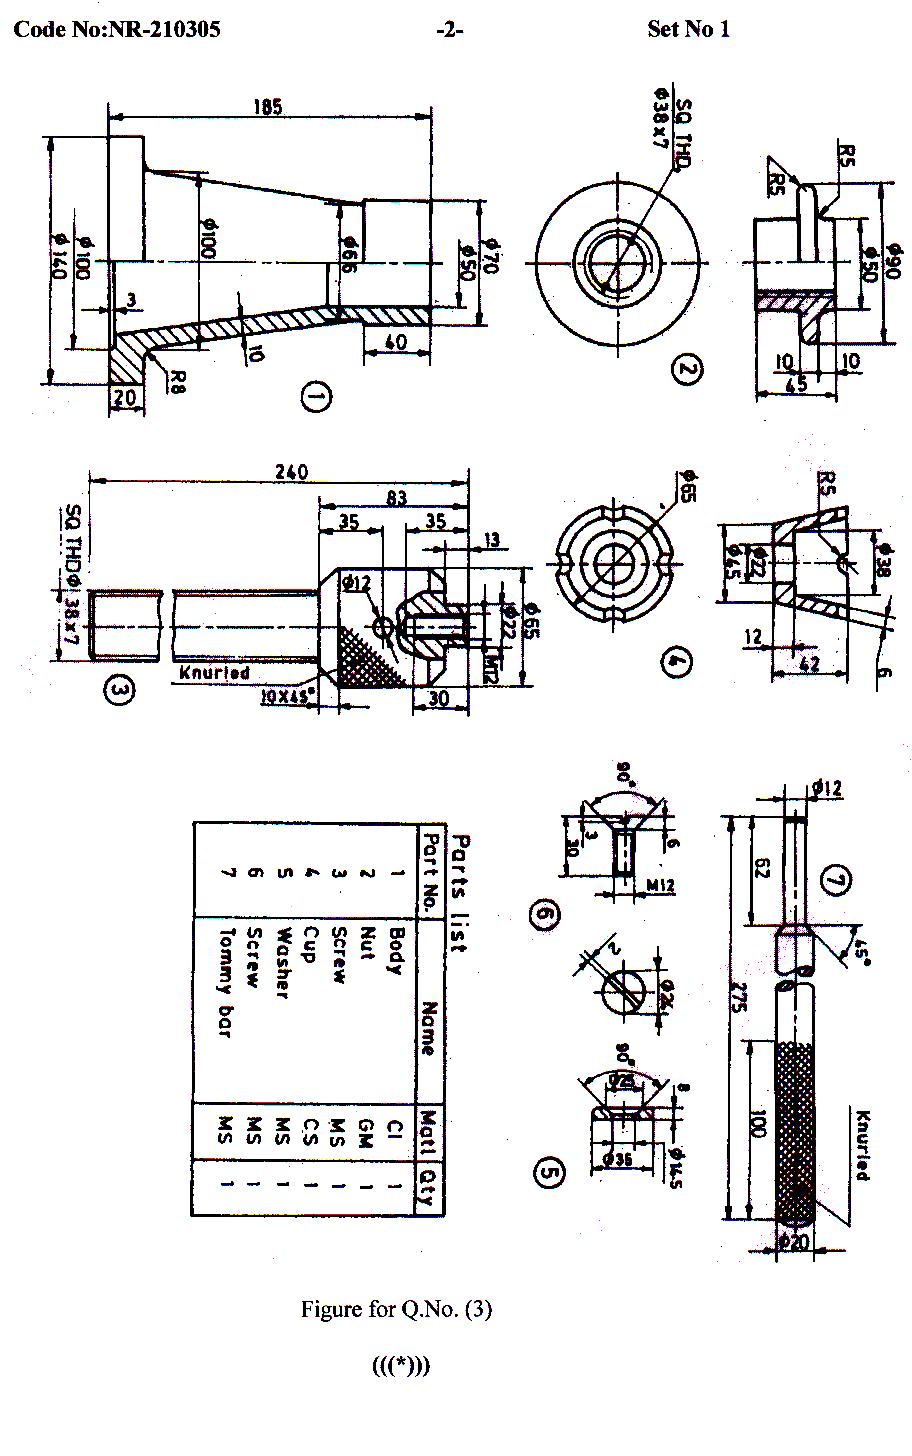 MECHANICAL: Machine Drawing model question papers